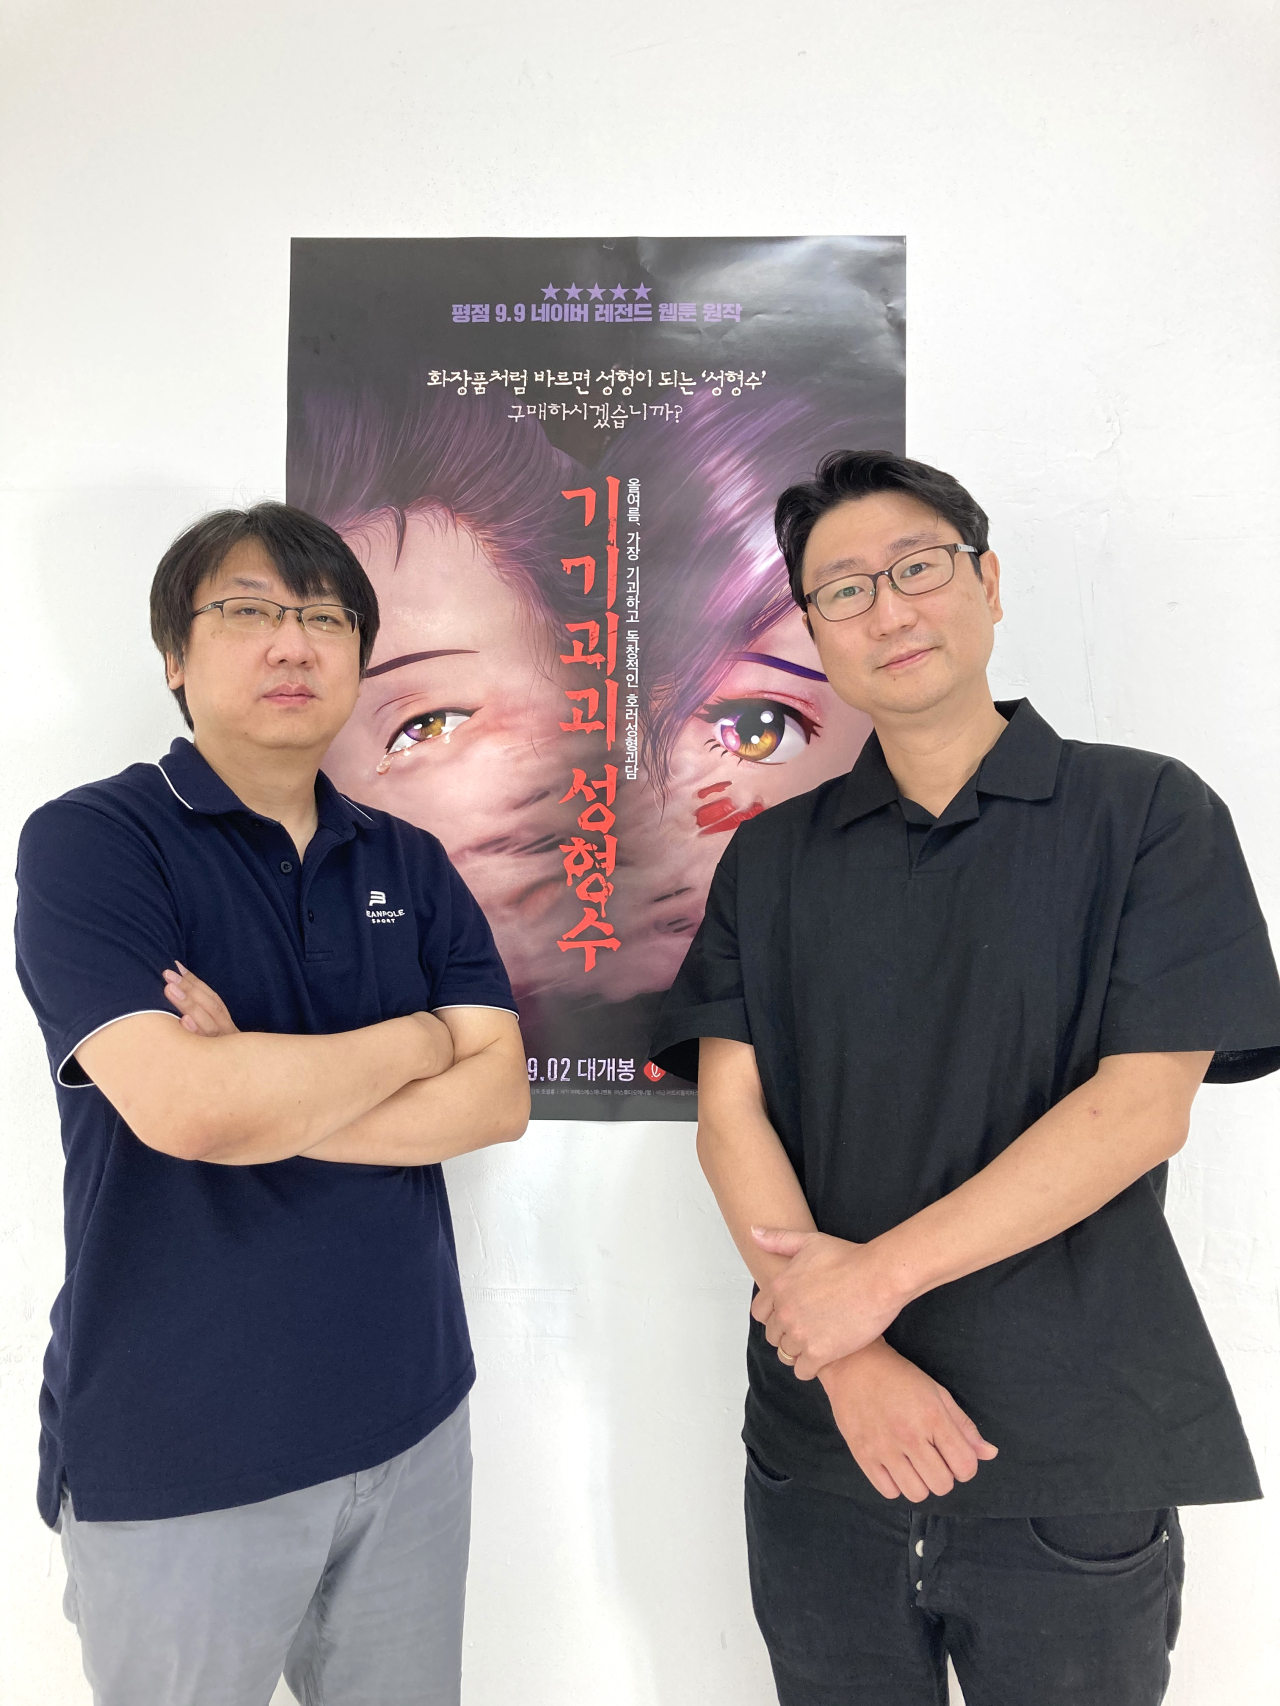 Producer Jeon Byung-jin (left) and director Cho Kyung-hun (Triple Pictures)